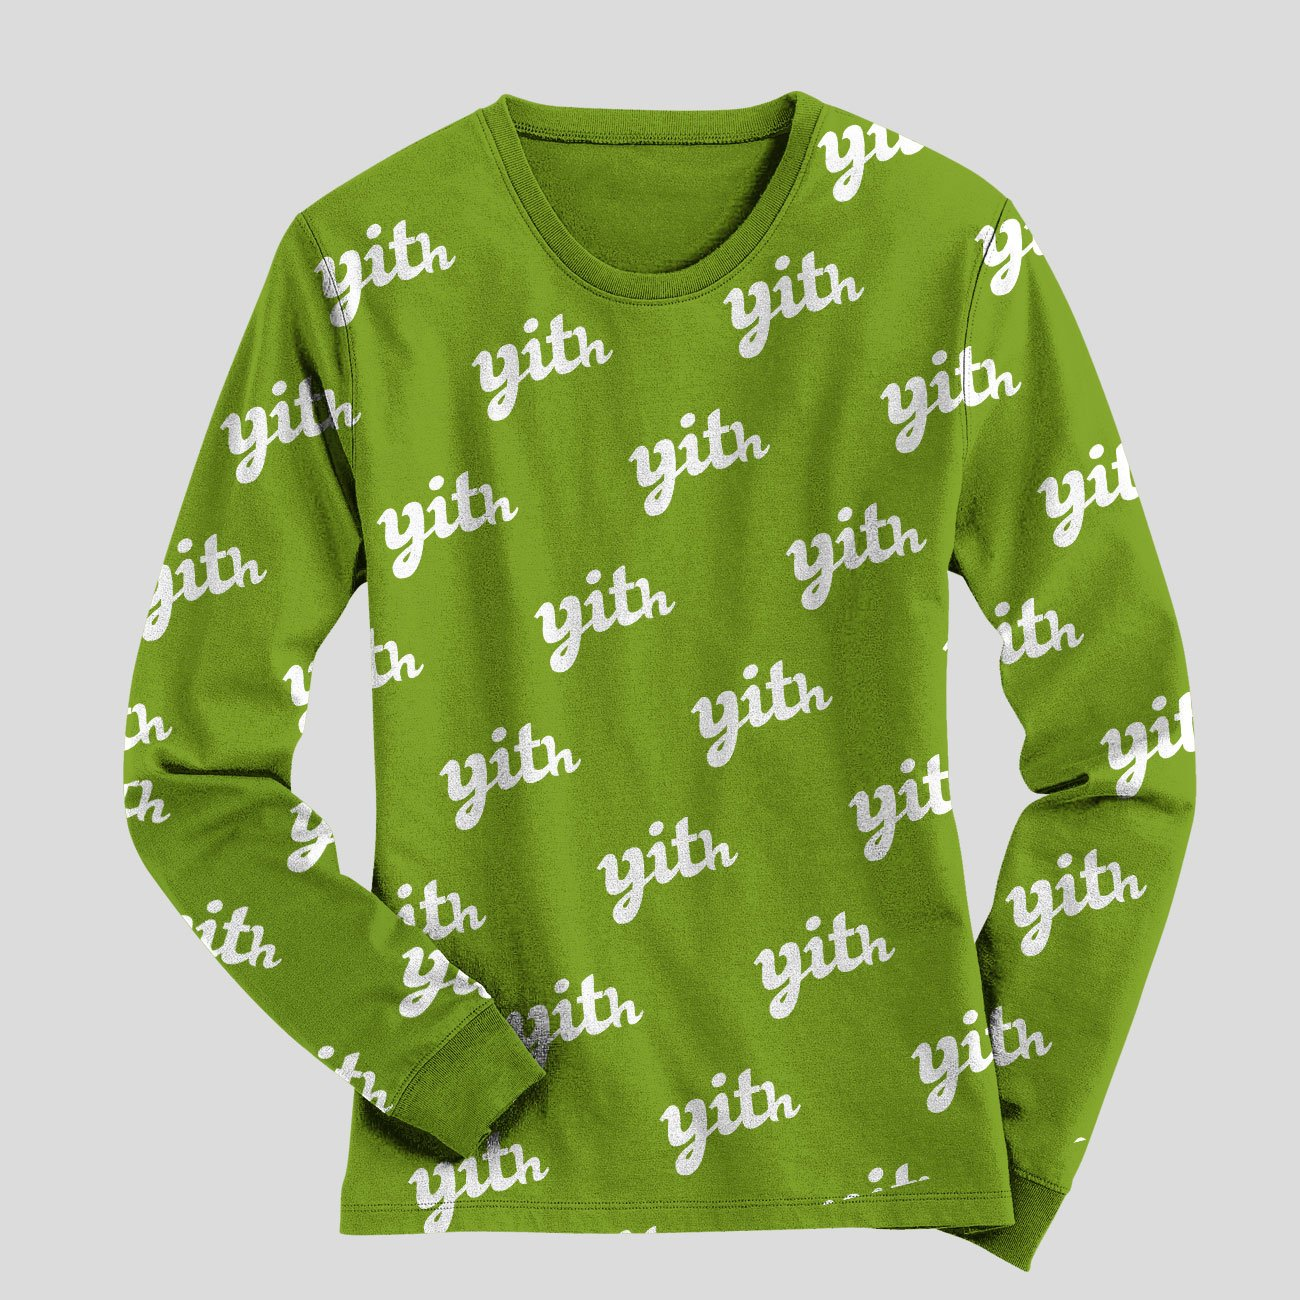 YITH Longsleeve Woman Green